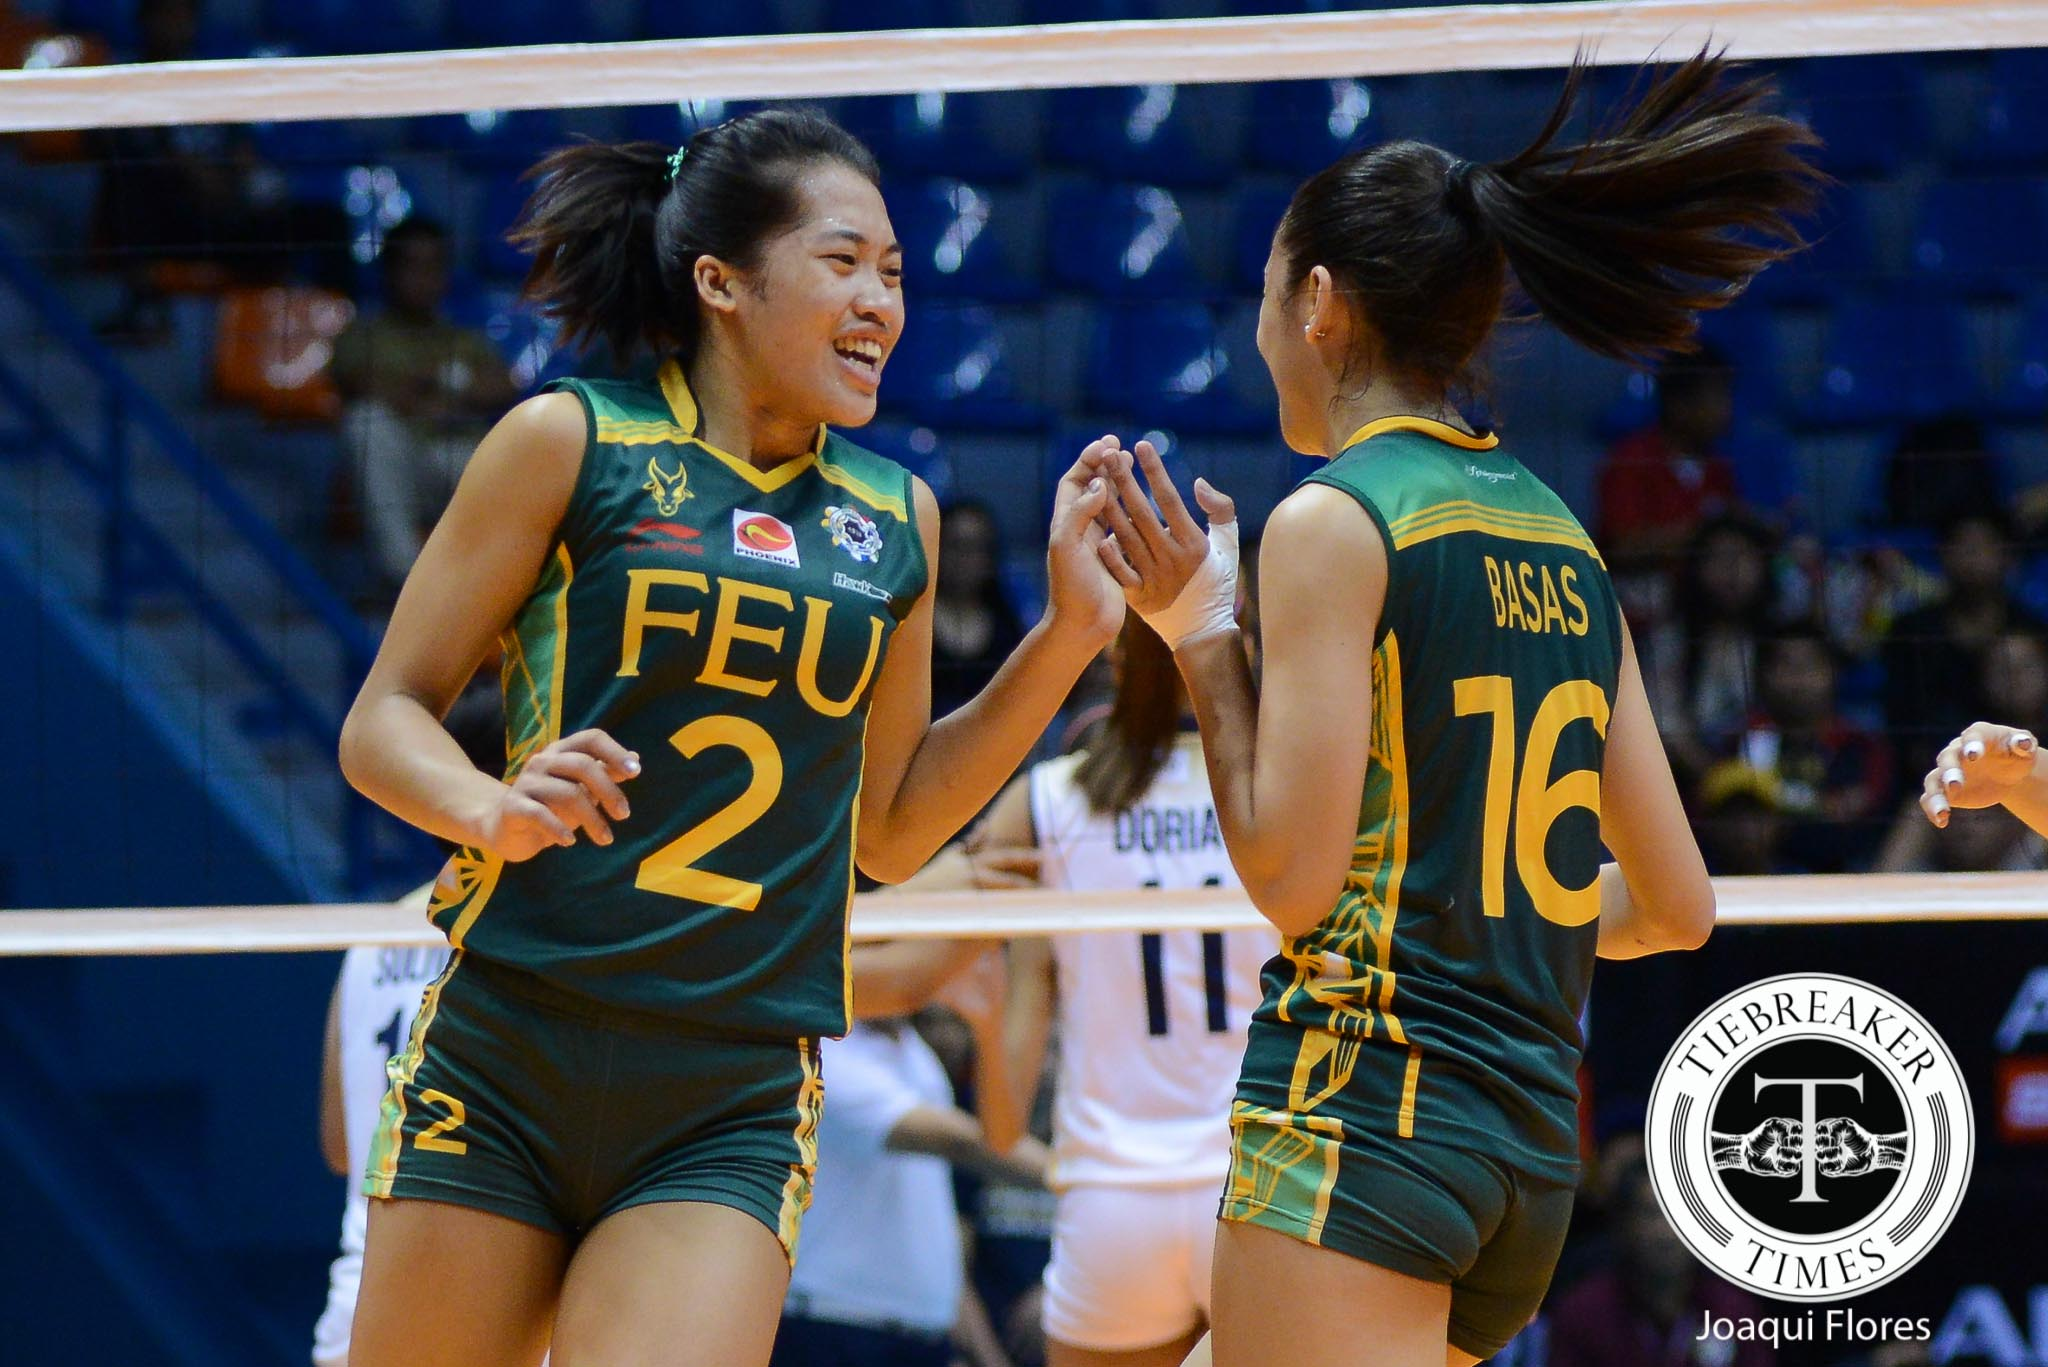 Tiebreaker Times Pons, FEU gain valuable confidence from tight DLSU match FEU News UAAP Volleyball  UAAP Season 78 Women's Volleyball UAAP Season 78 FEU Women's Volleyball Bernadette Pons